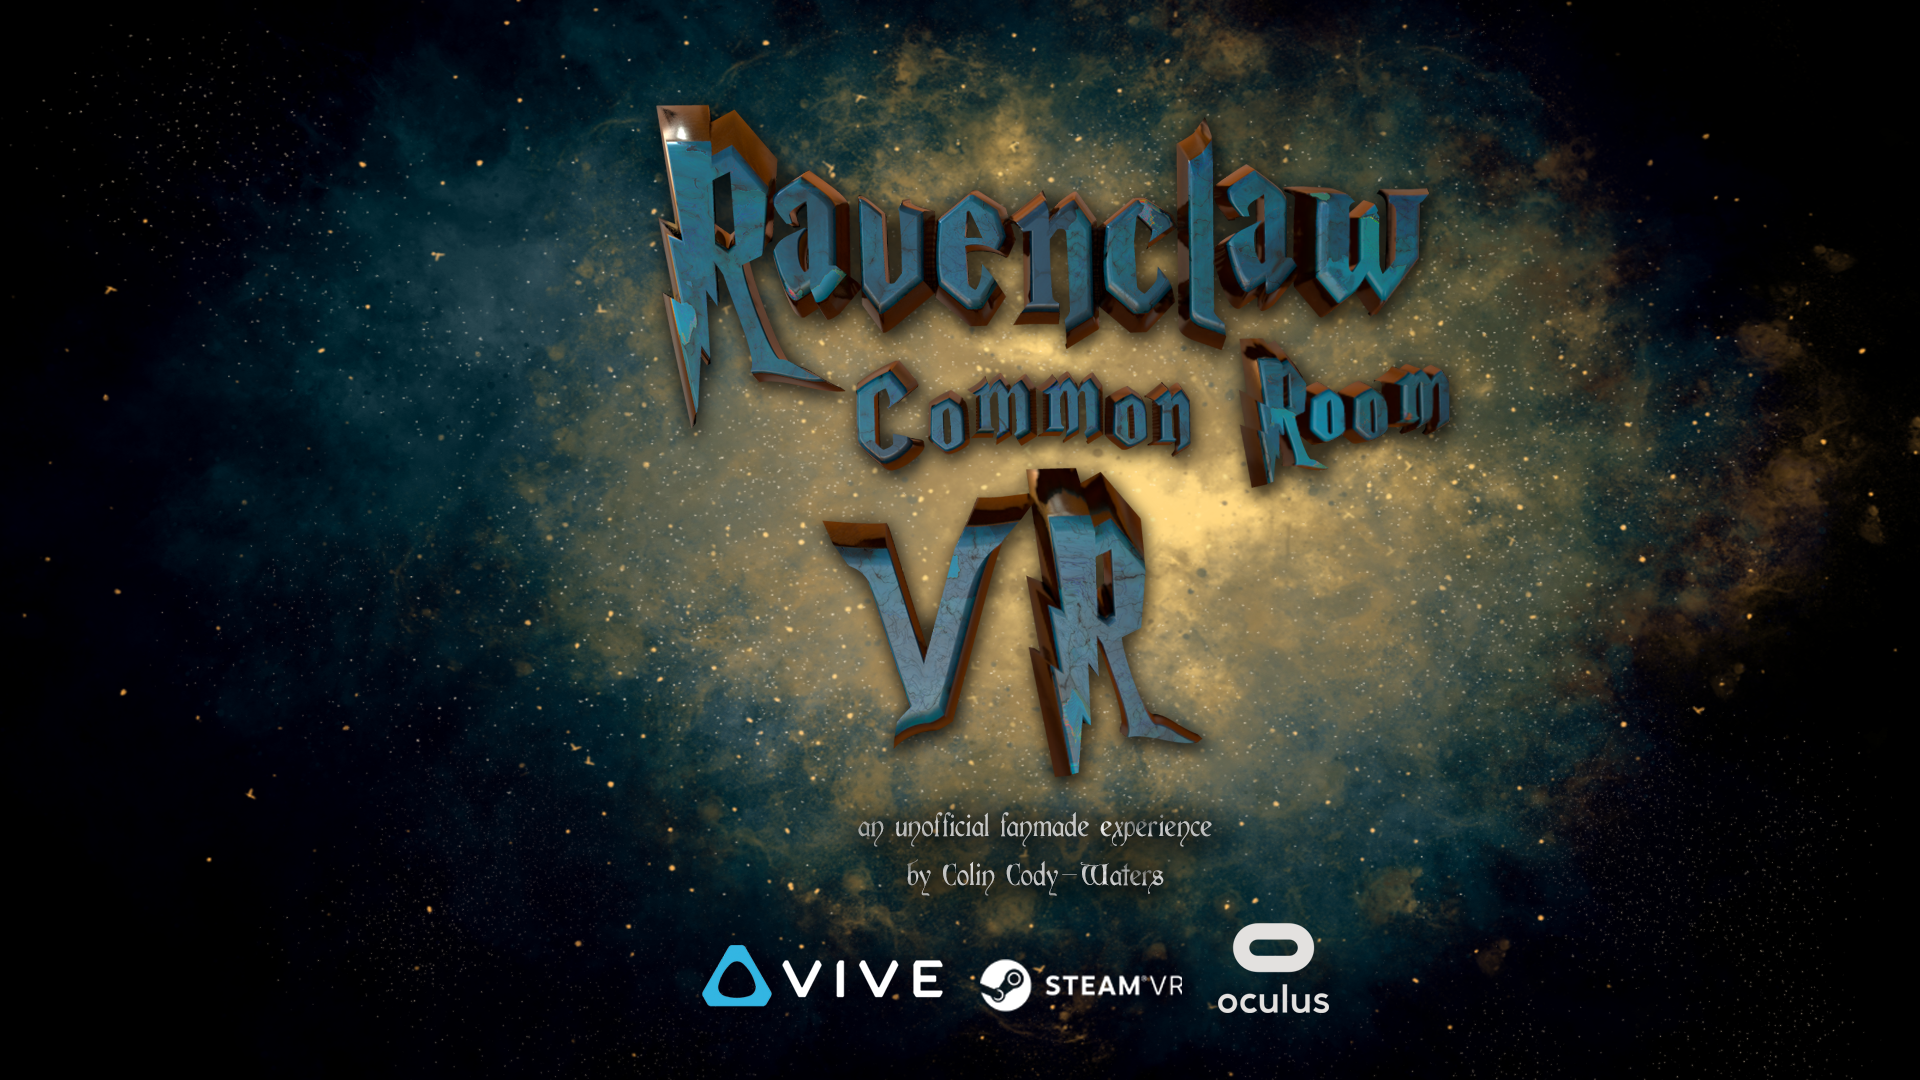 Ravenclaw Common Room VR